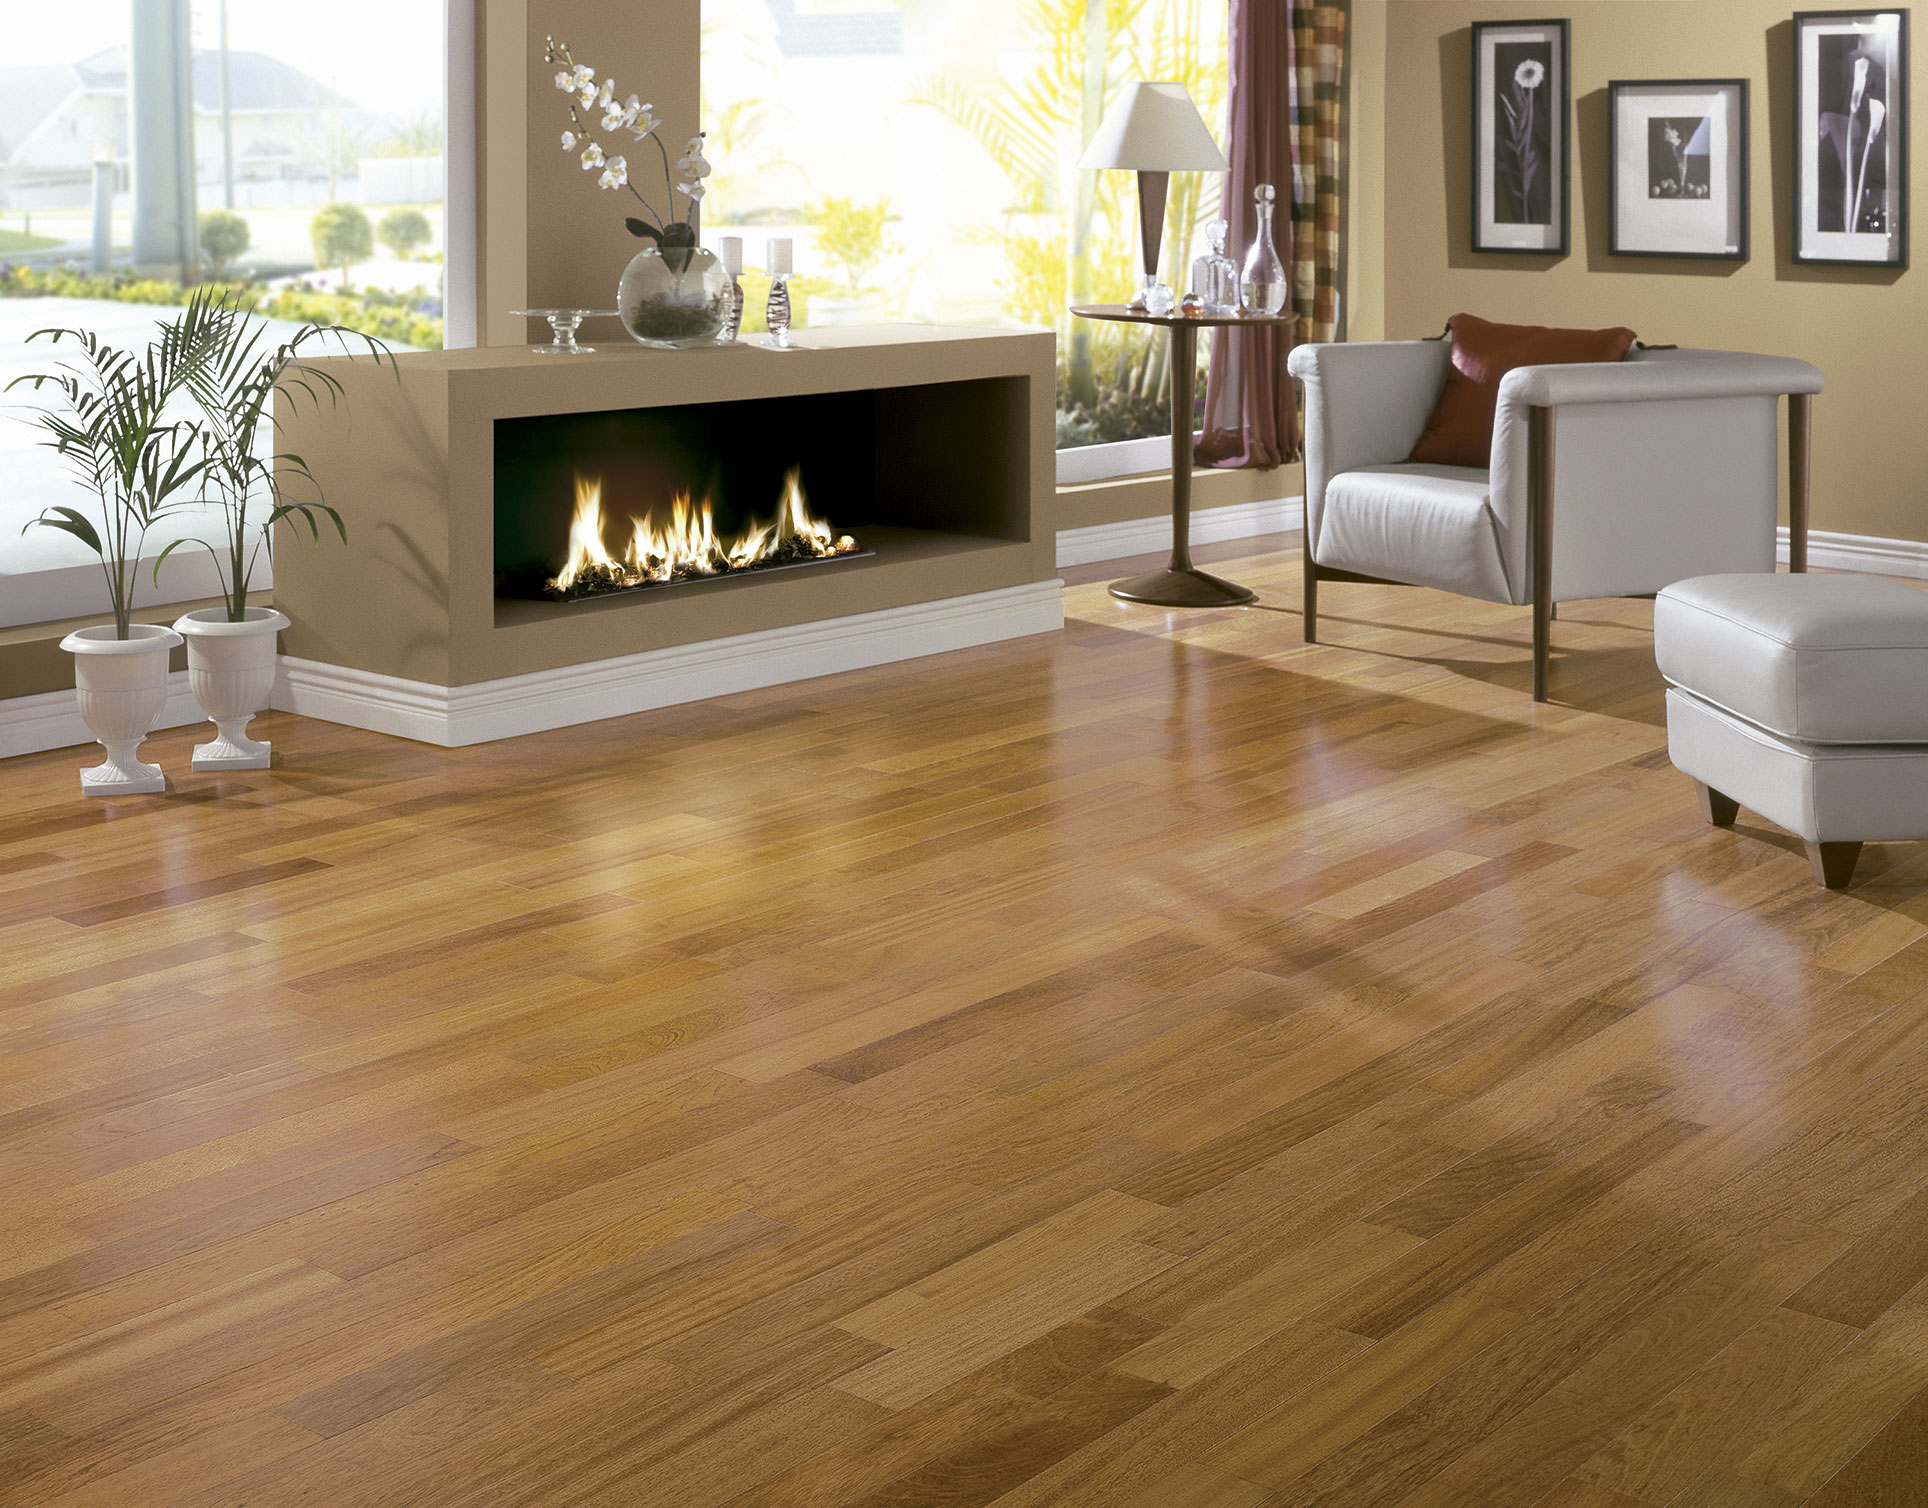 floor restoring best of floors hack and to elegant hardwood clean products quick the luster for cleaner shine natural